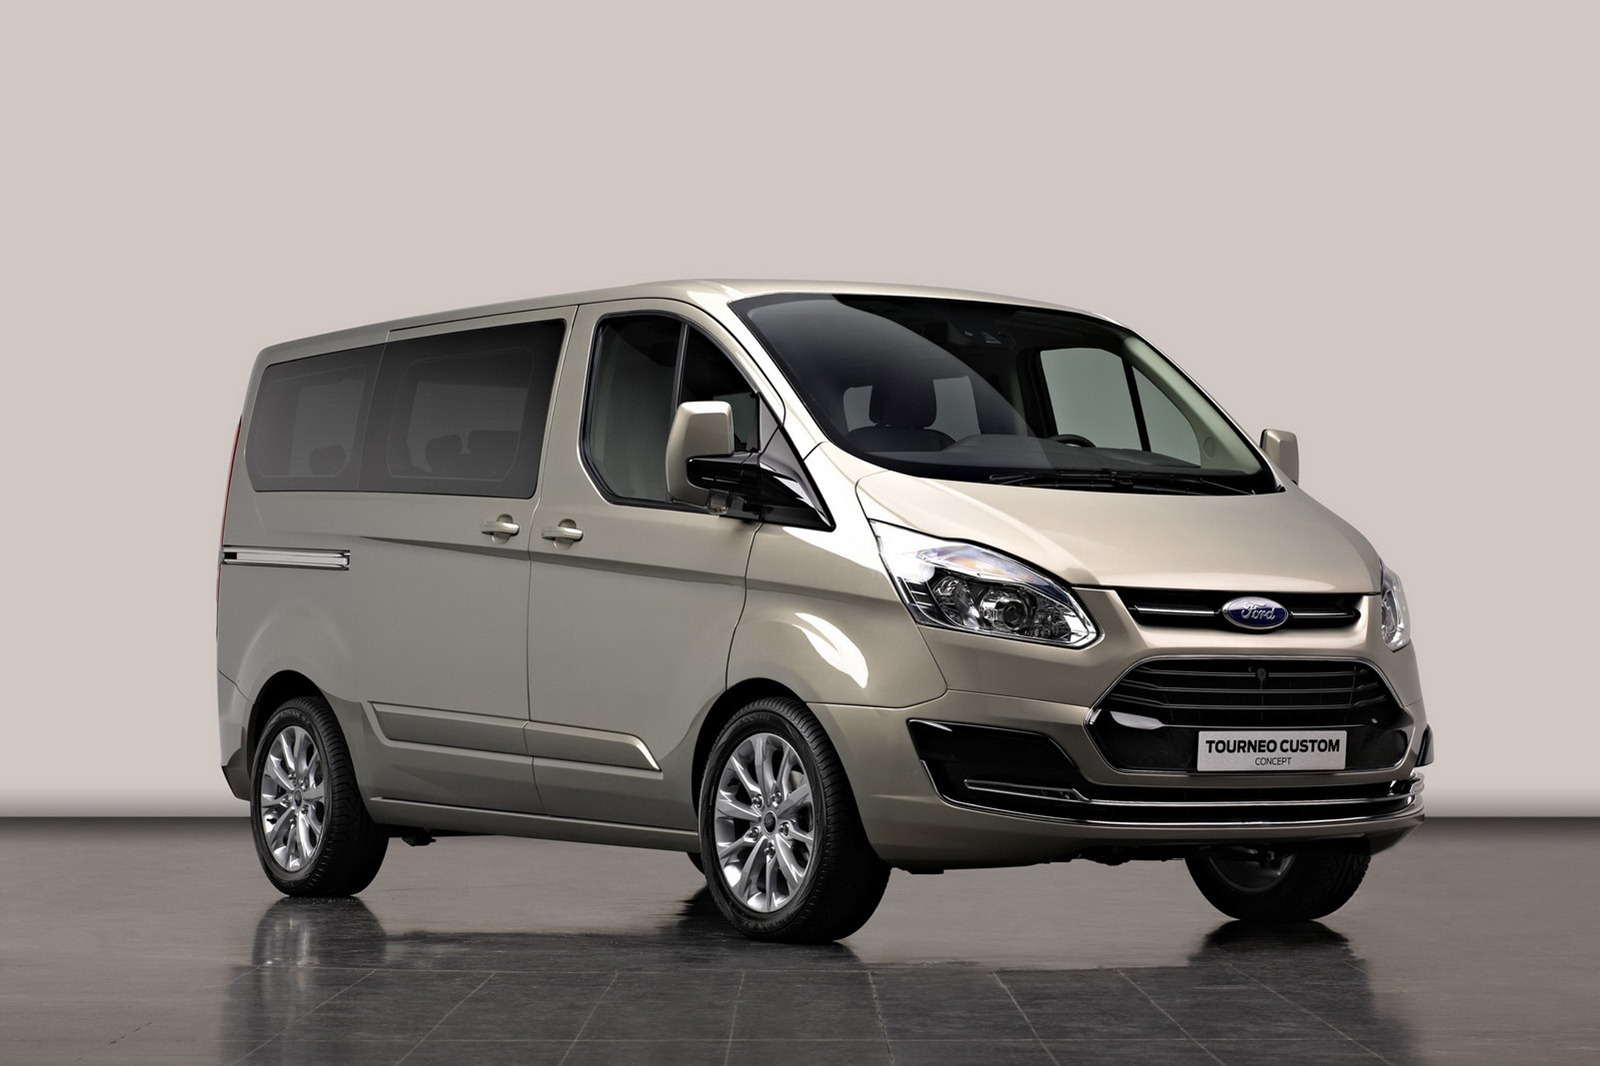 2012 Ford Tourneo Custom Concept 5 2012 Ford Transit with Tourneo Custom Concept